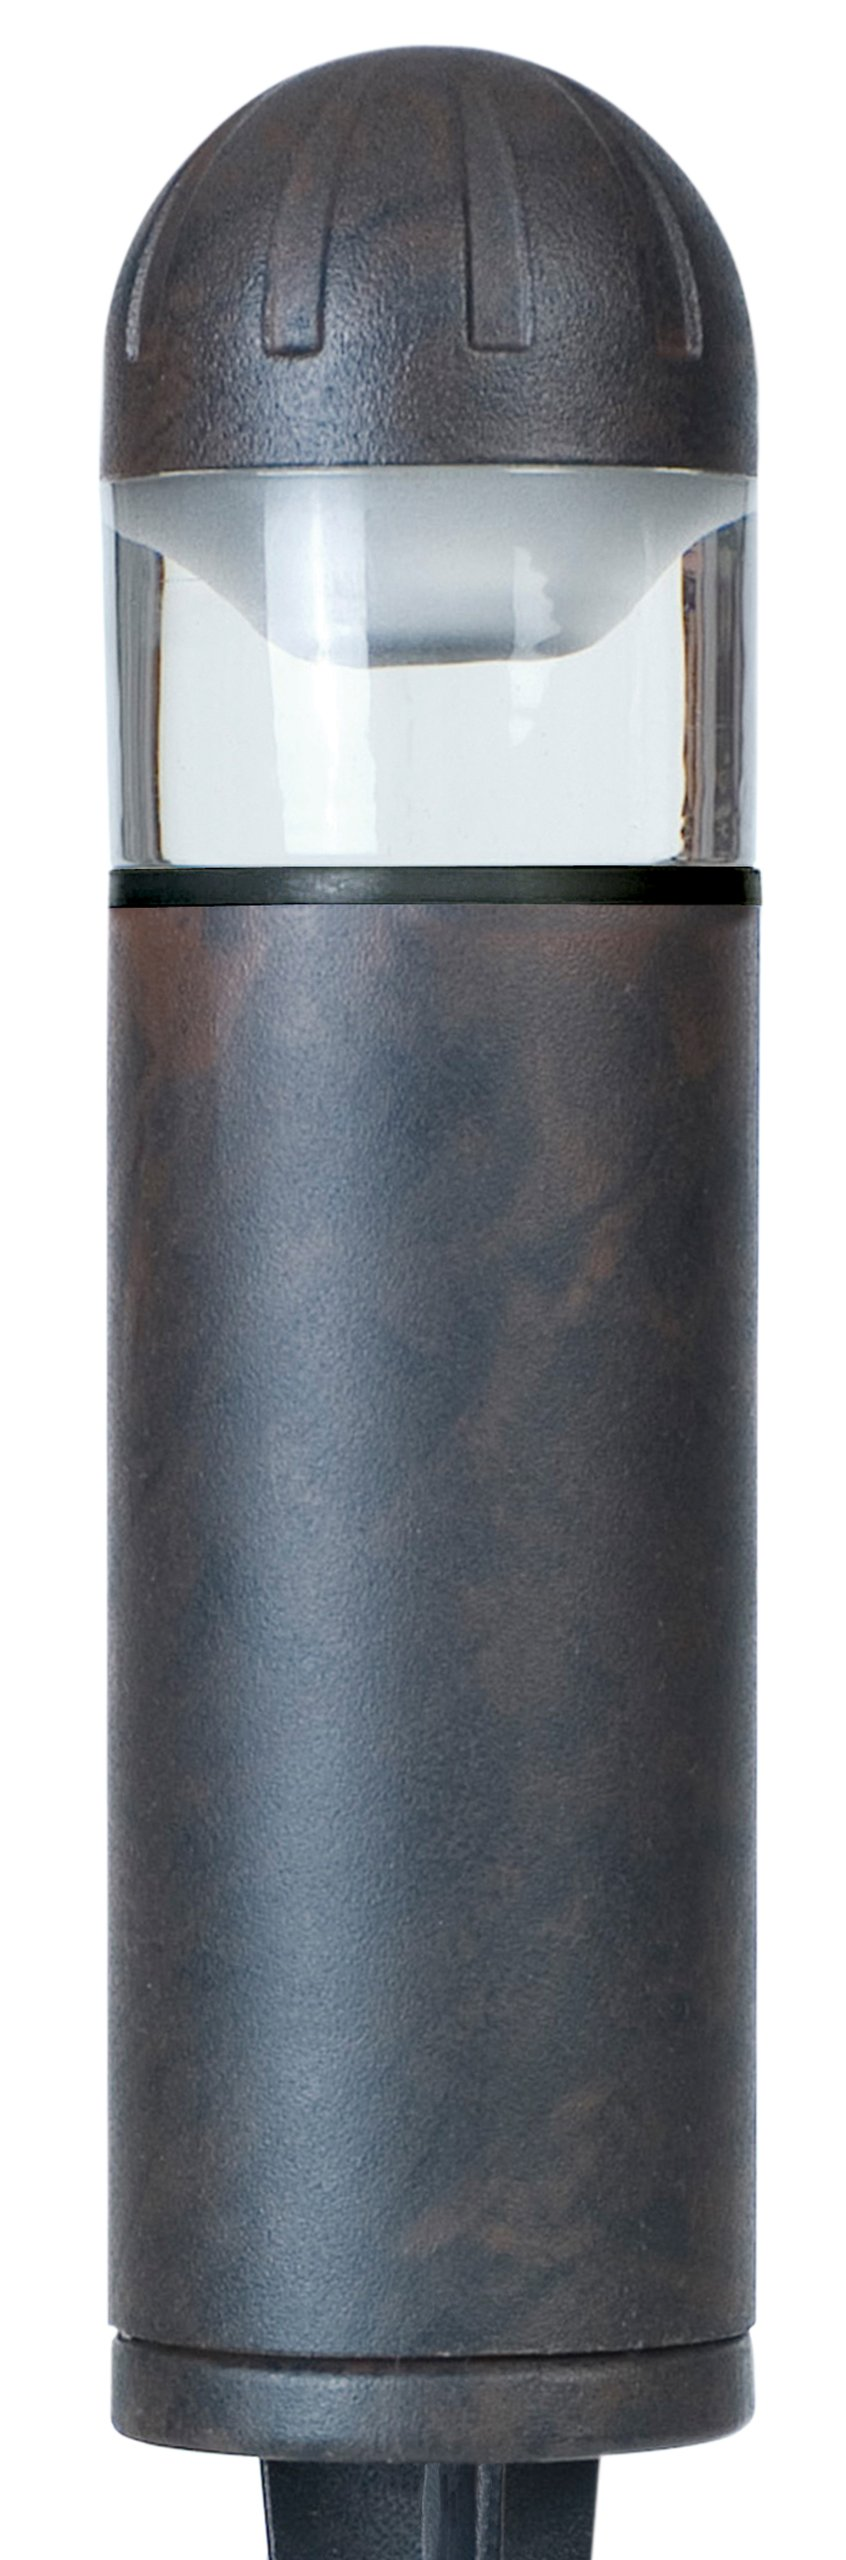 Paradise by Sterno Home Low Voltage aluminum 20W Bollard, bronze (Quick clip connector, Halogen MR11 bulb - INCLUDE by Sterno Home